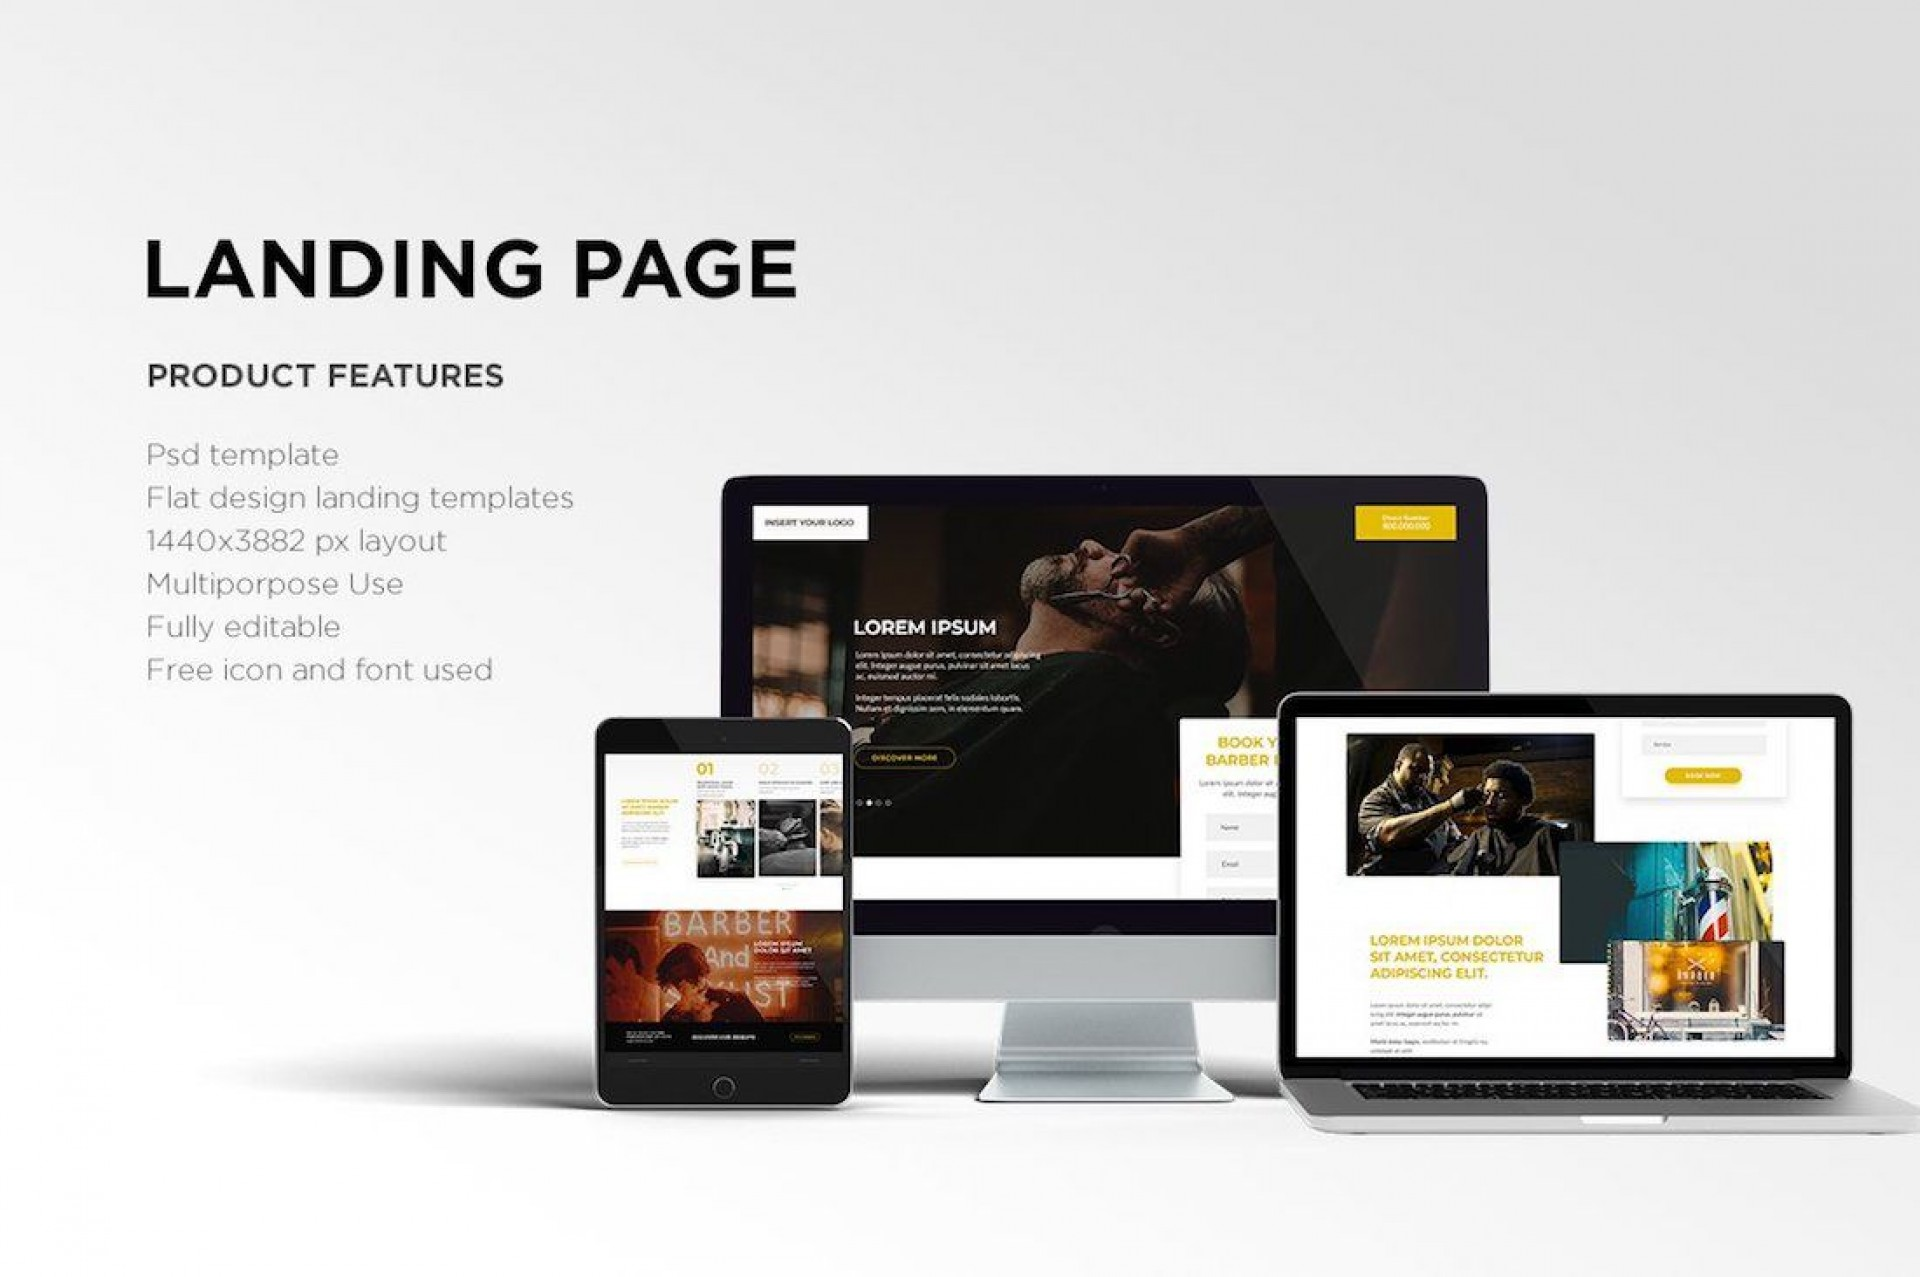 005 Impressive One Page Website Template Psd Free Download Idea 1920